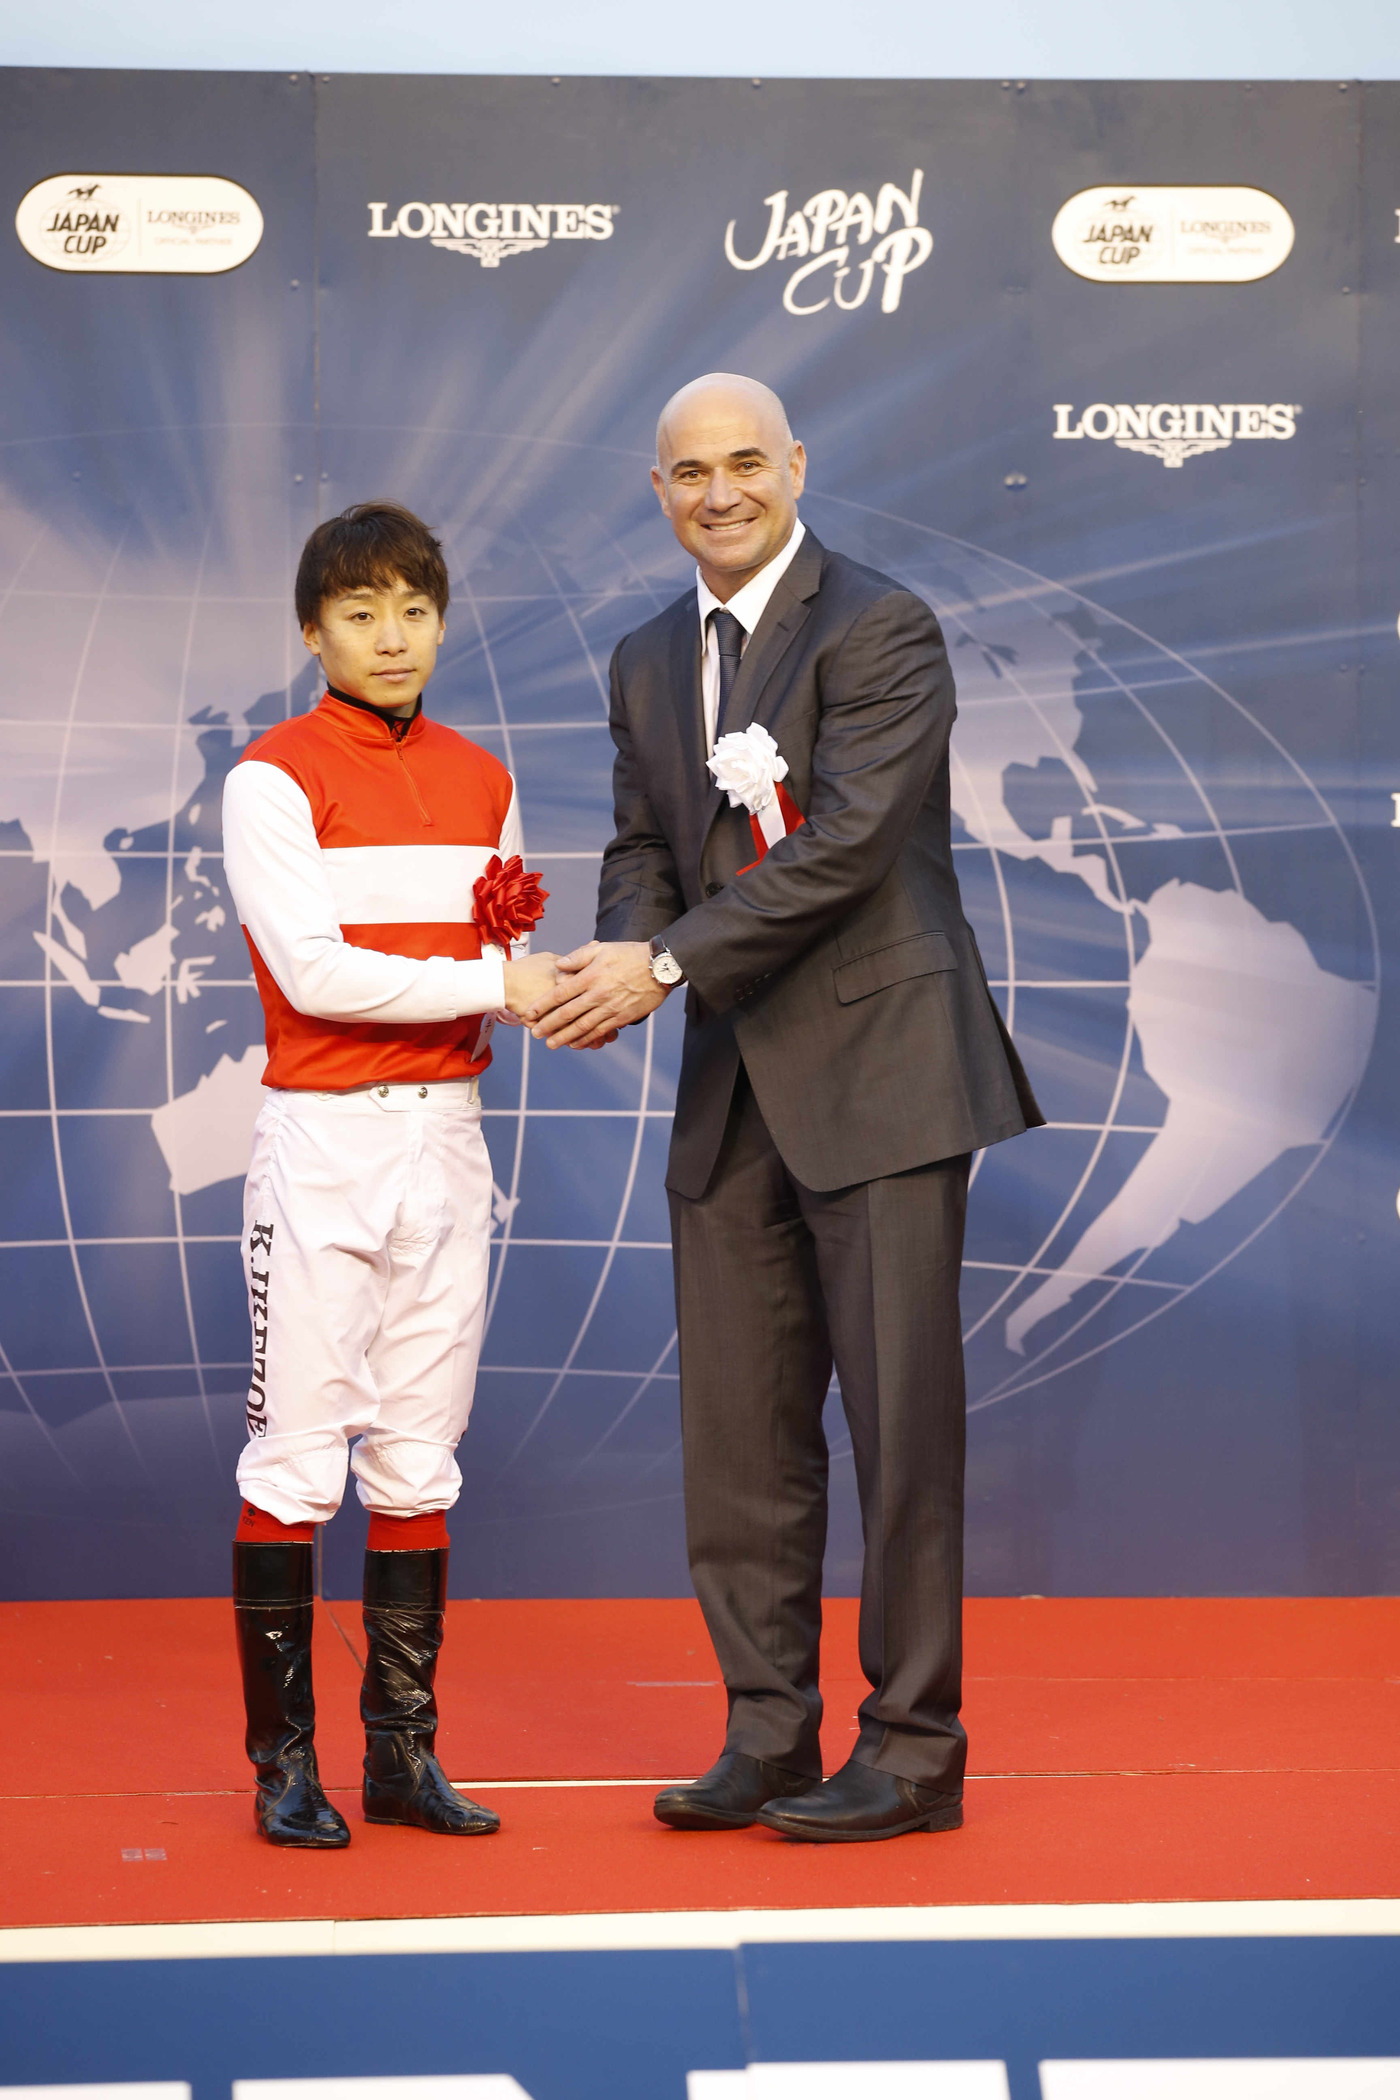 Longines Flat Racing Event: 2015 Japan Cup in association with Longines won by Shonan Pandora 3